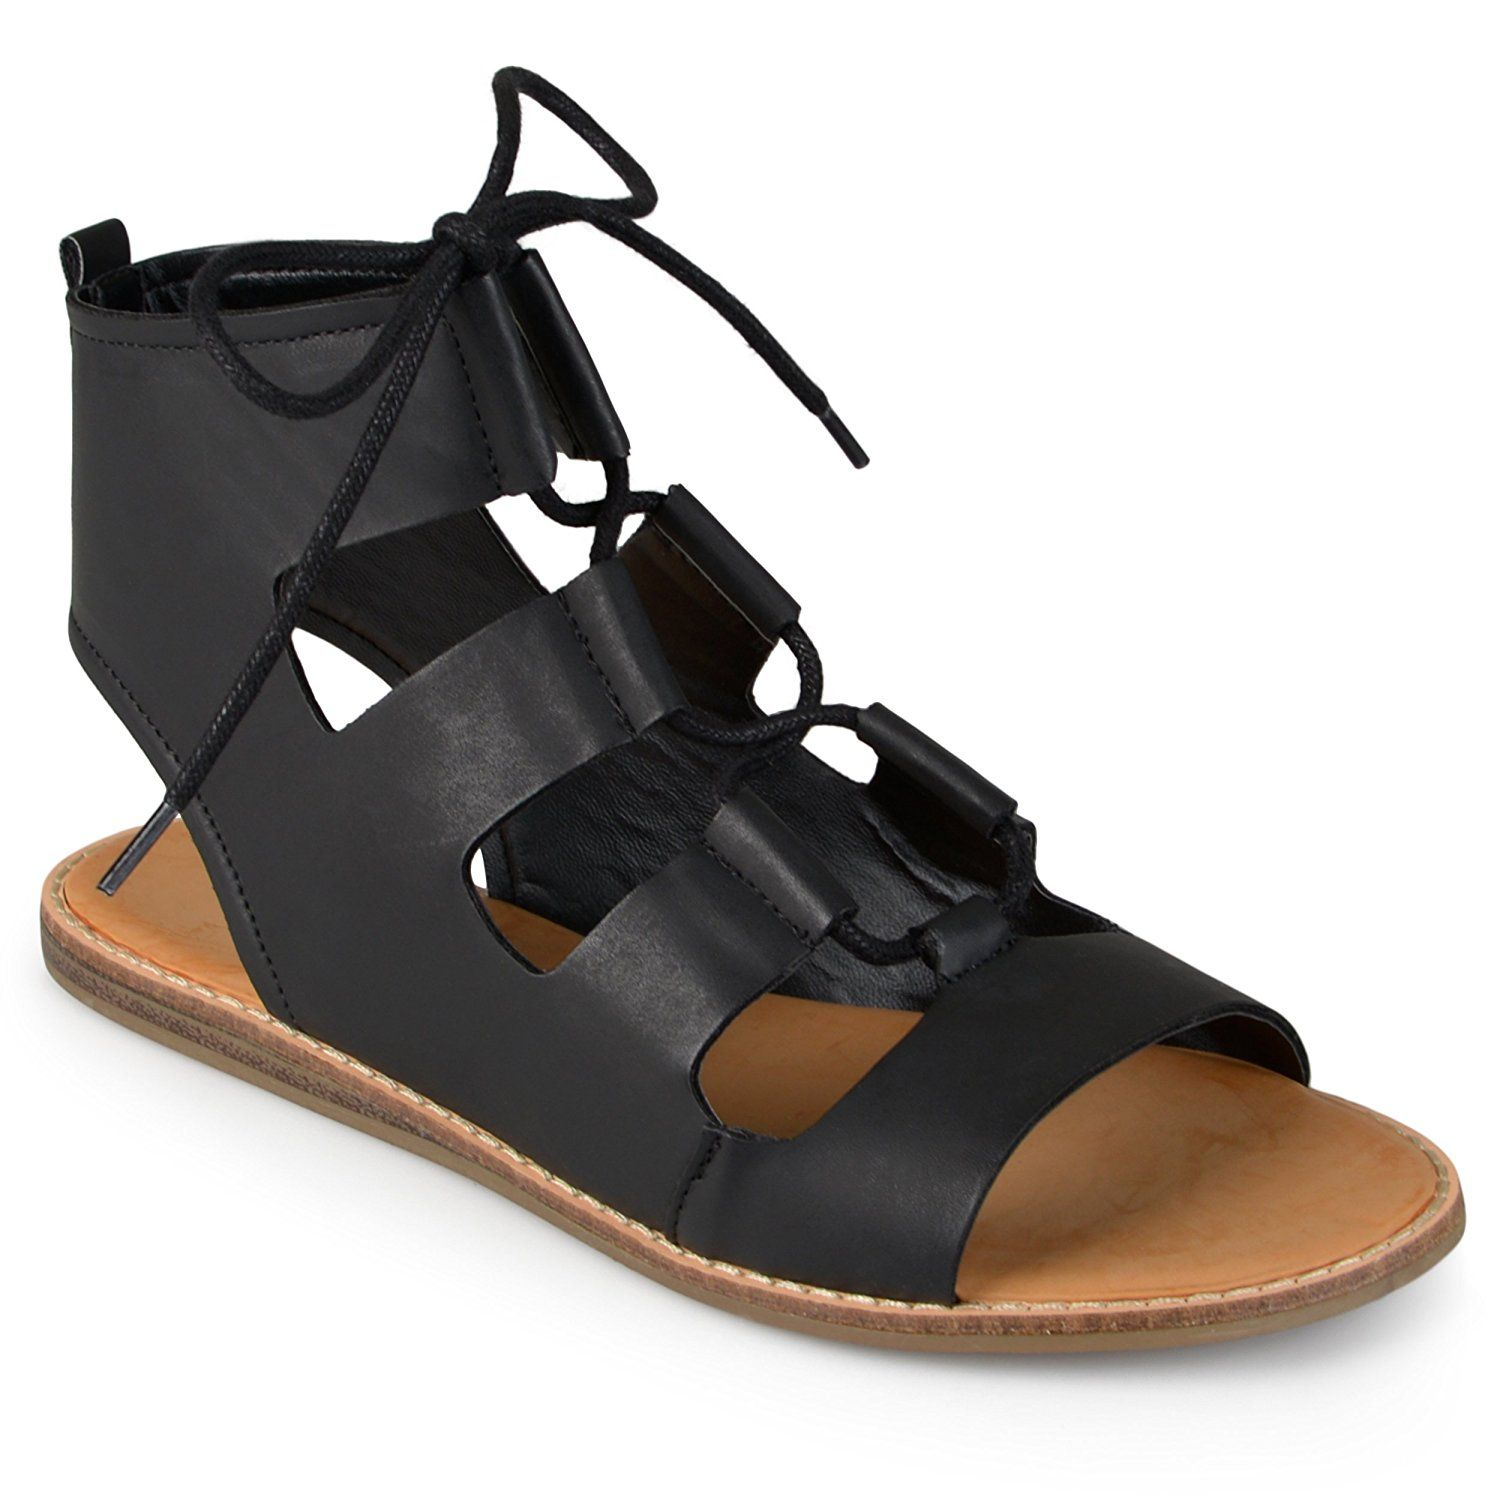 6c1987876a9 Journee Collection Womens Lace-up Flat Gladiator Sandals     Find out more  about